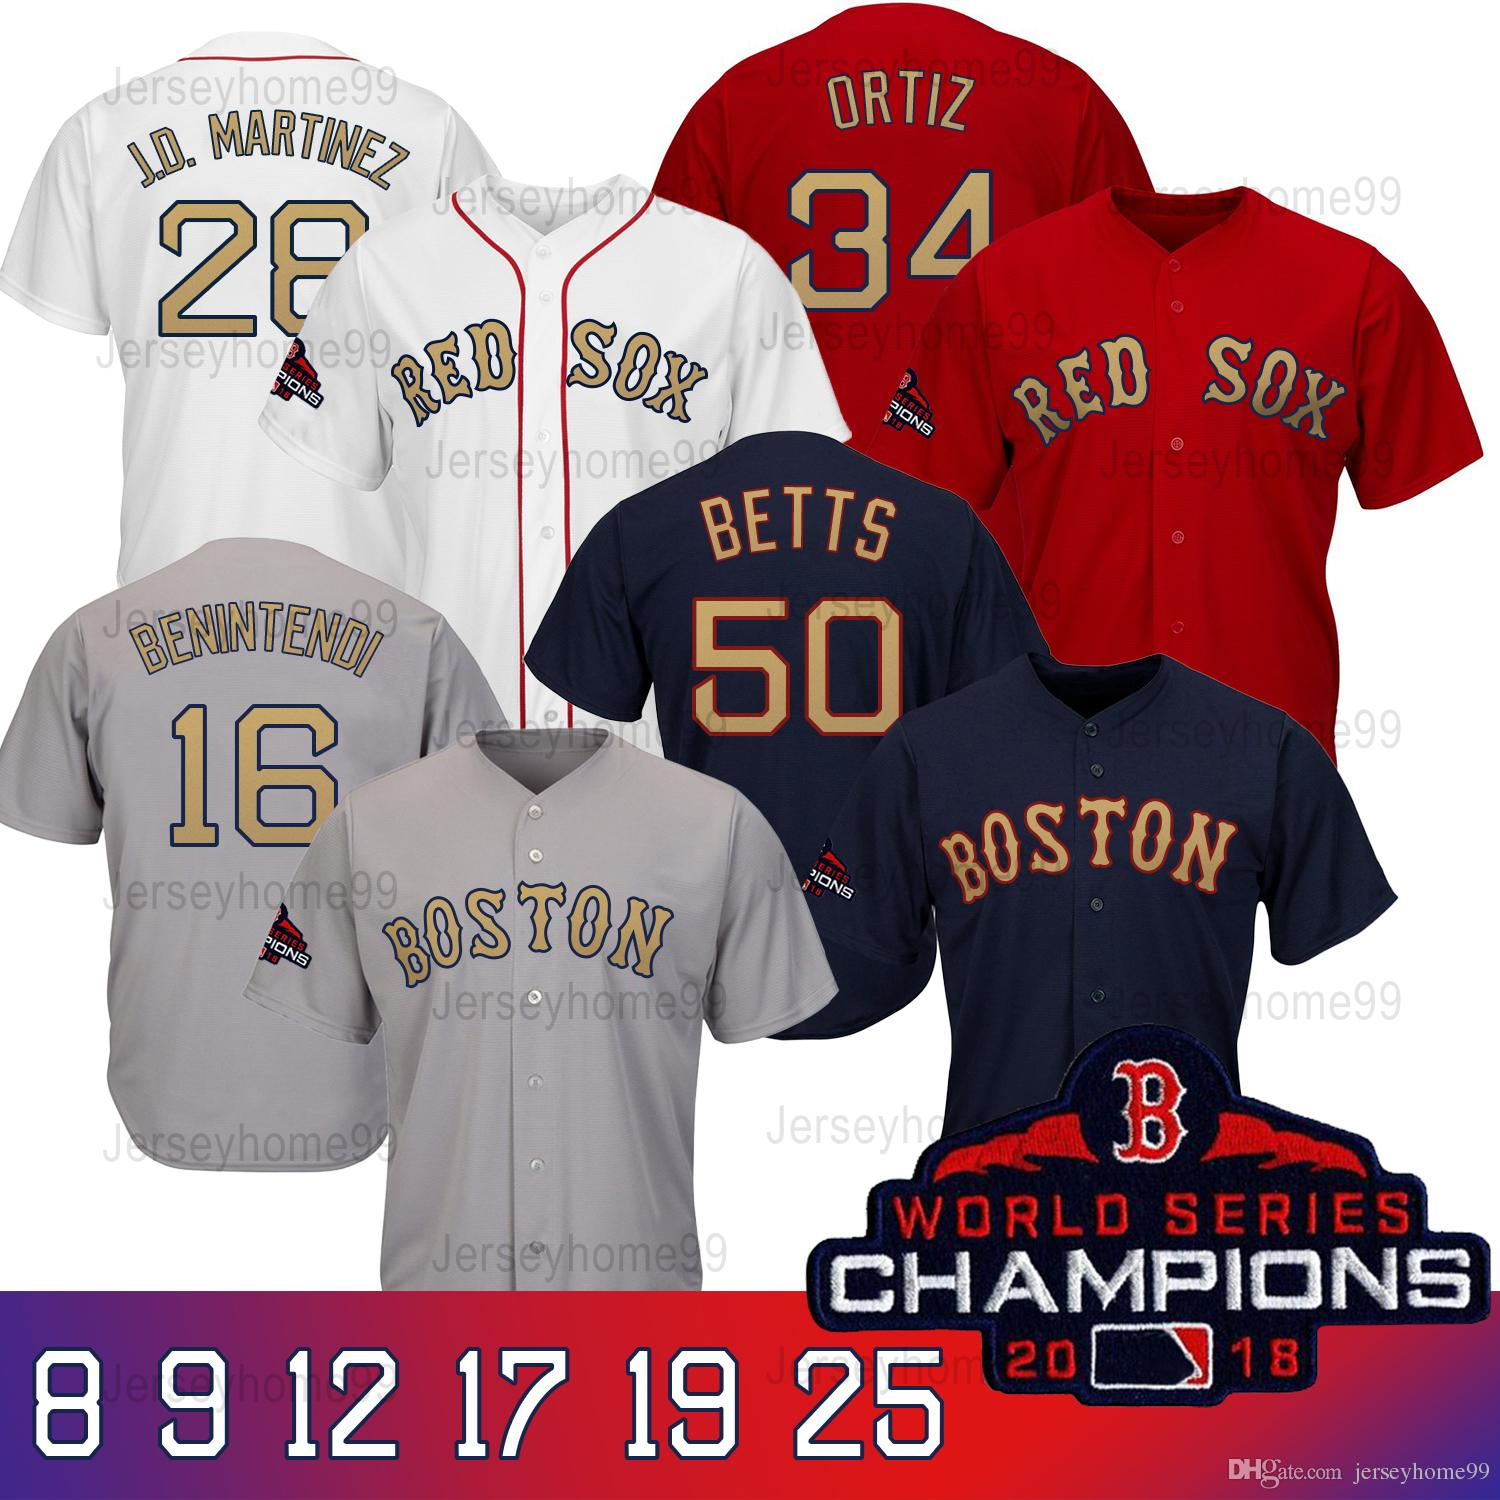 buy online 48c09 79a19 2019 Boston 2019 Red Sox World Series Champions Jerseys Men'S Women  Toddlers Baseball Jerseys With Champion Patch S XXXL White Gray Red Blue  From ...